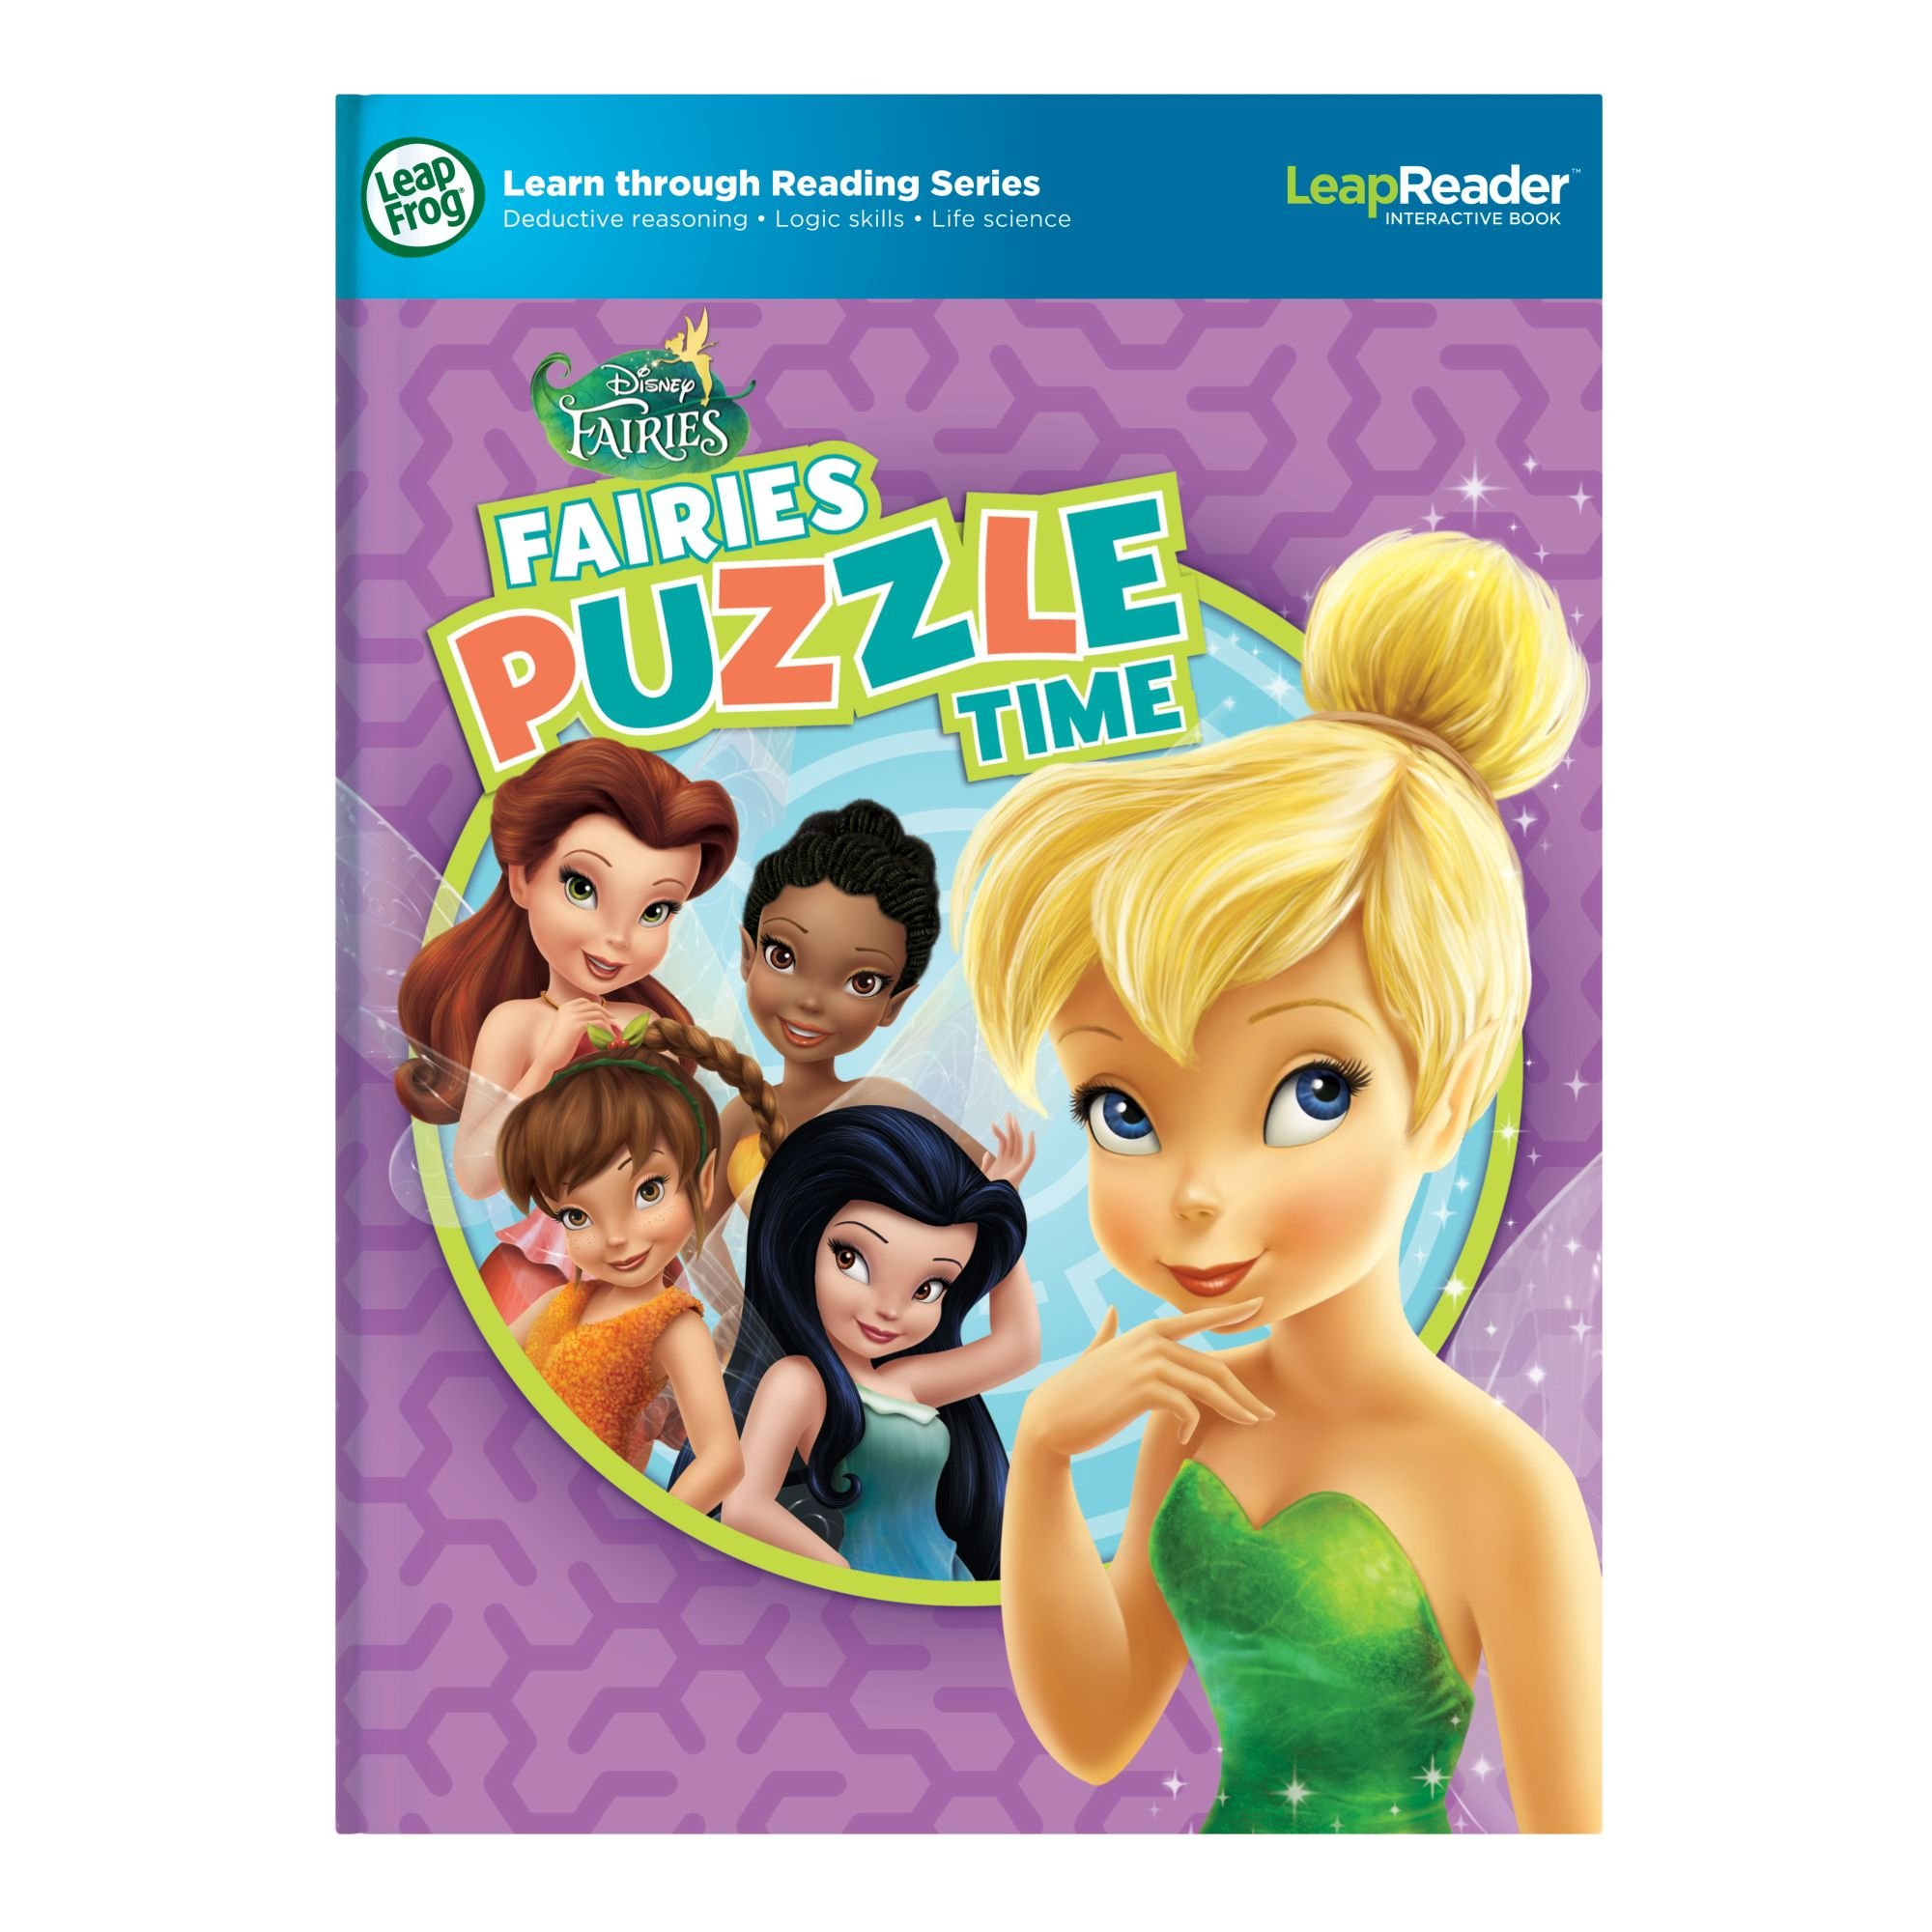 LeapFrog LeapReader Book: Disney Fairies Puzzle Time (works with Tag) by LeapFrog (Image #7)